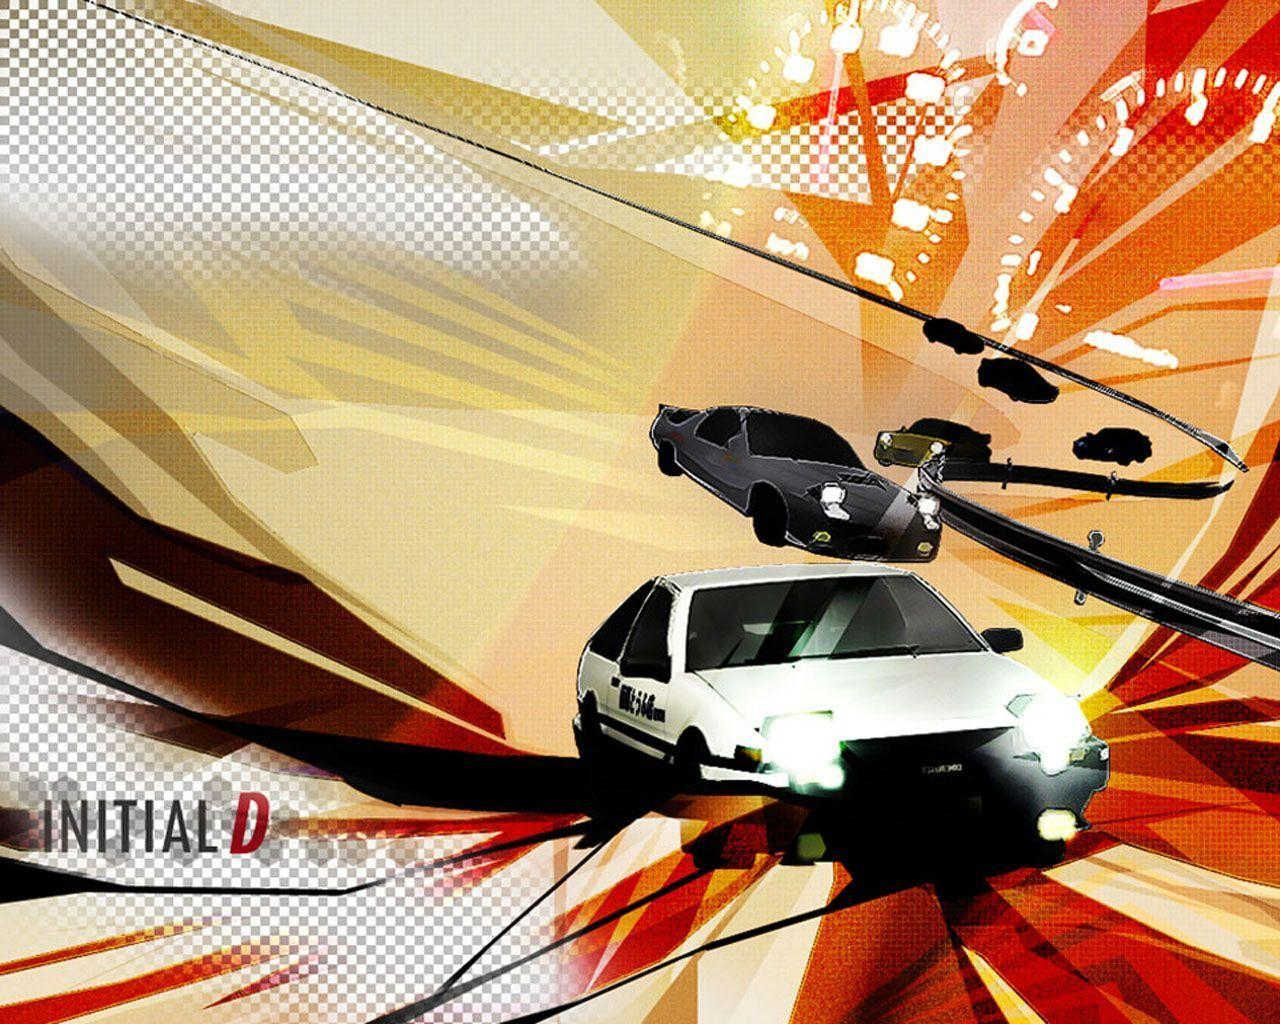 Pix For > Initial D Wallpapers 1920x1080